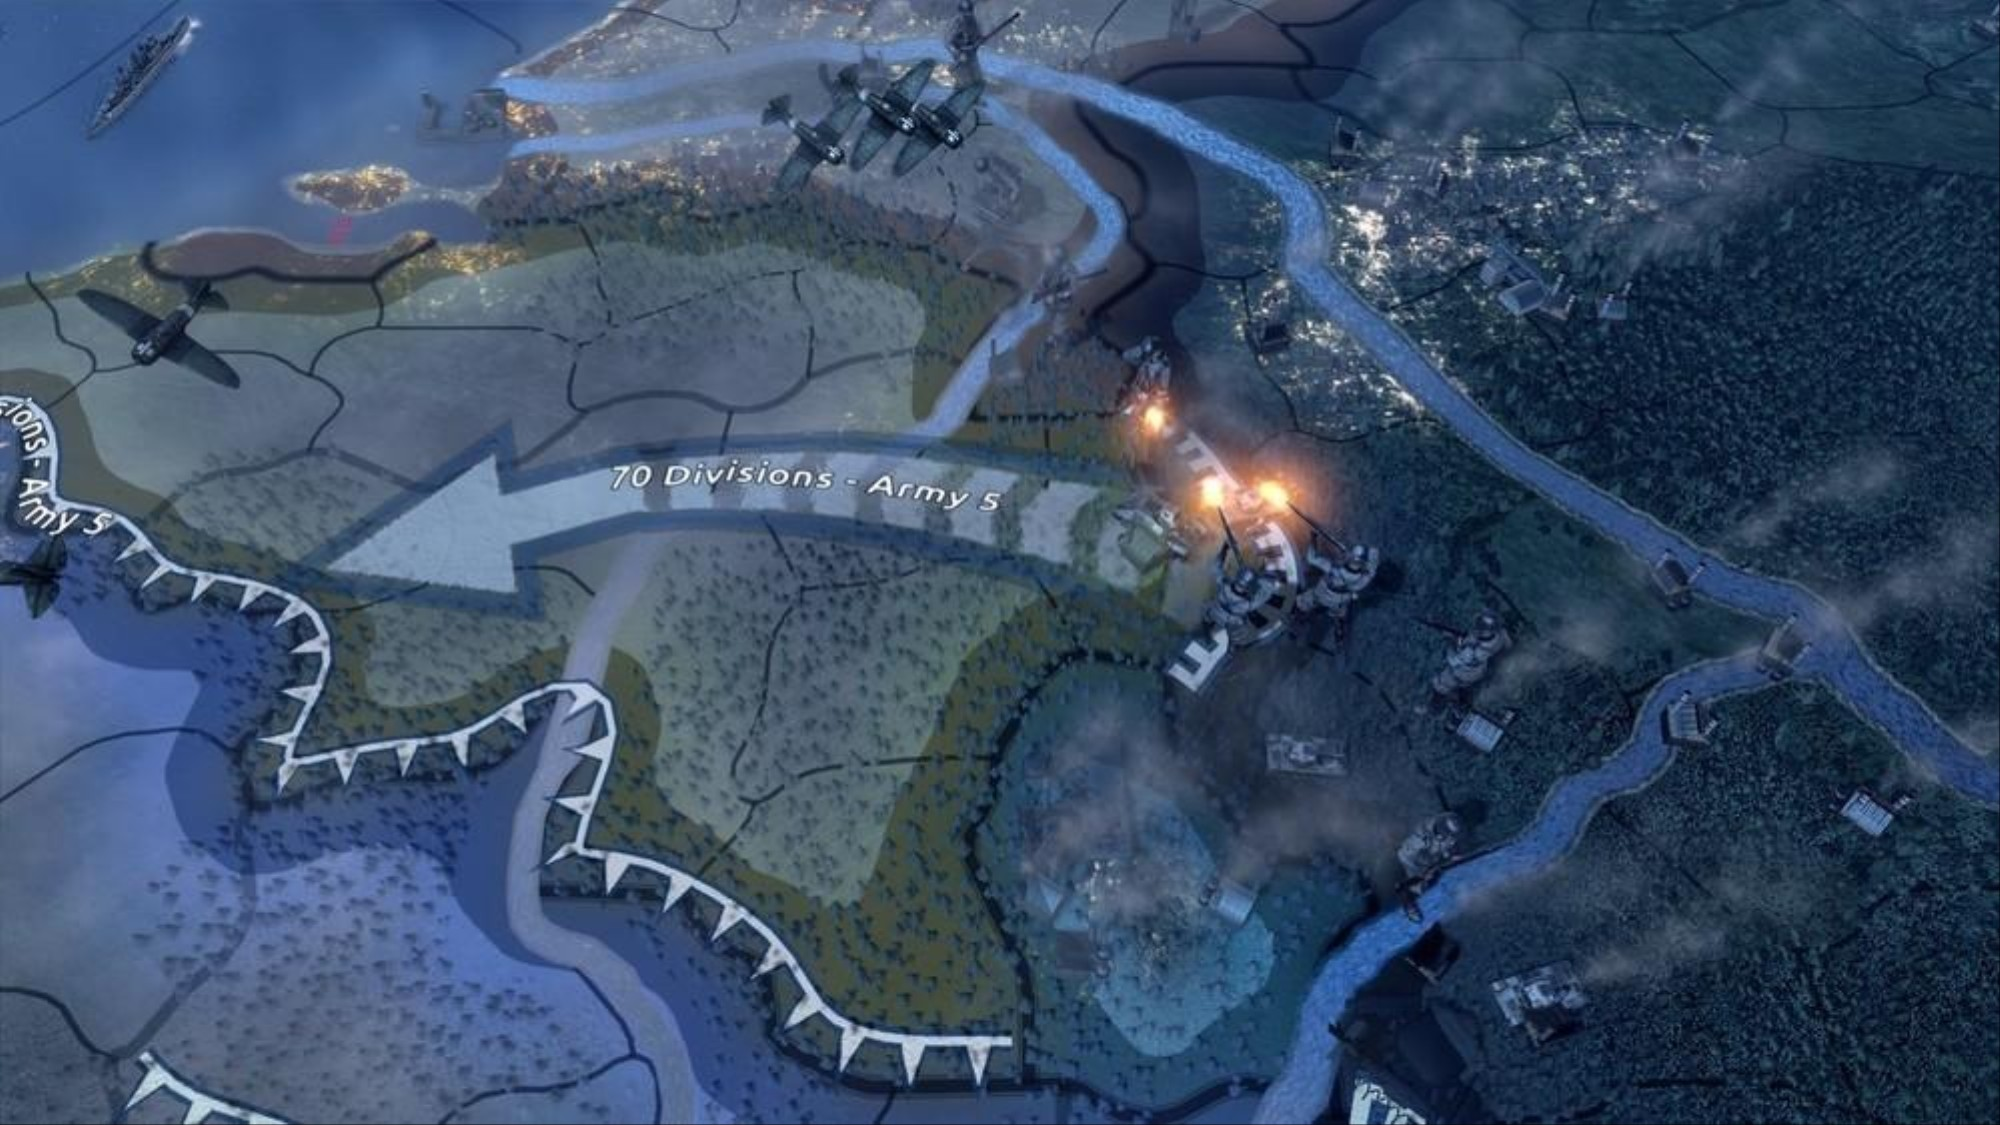 WWII Sim 'Hearts of Iron IV' Makes the Modern World Look